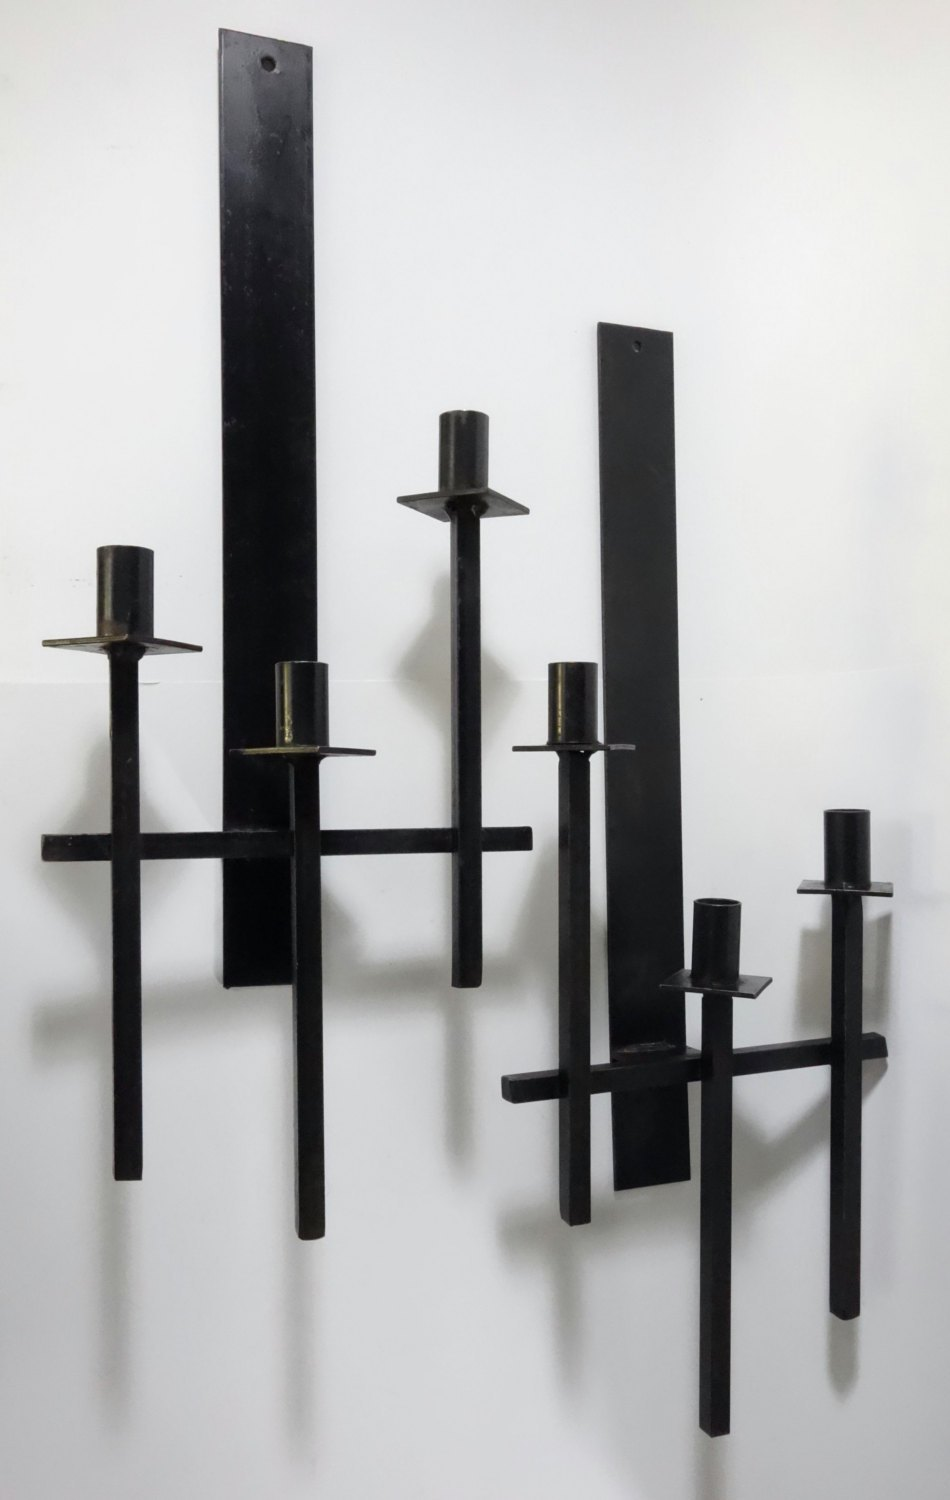 Image of: Black Iron Candle Sconce Designs Ideas